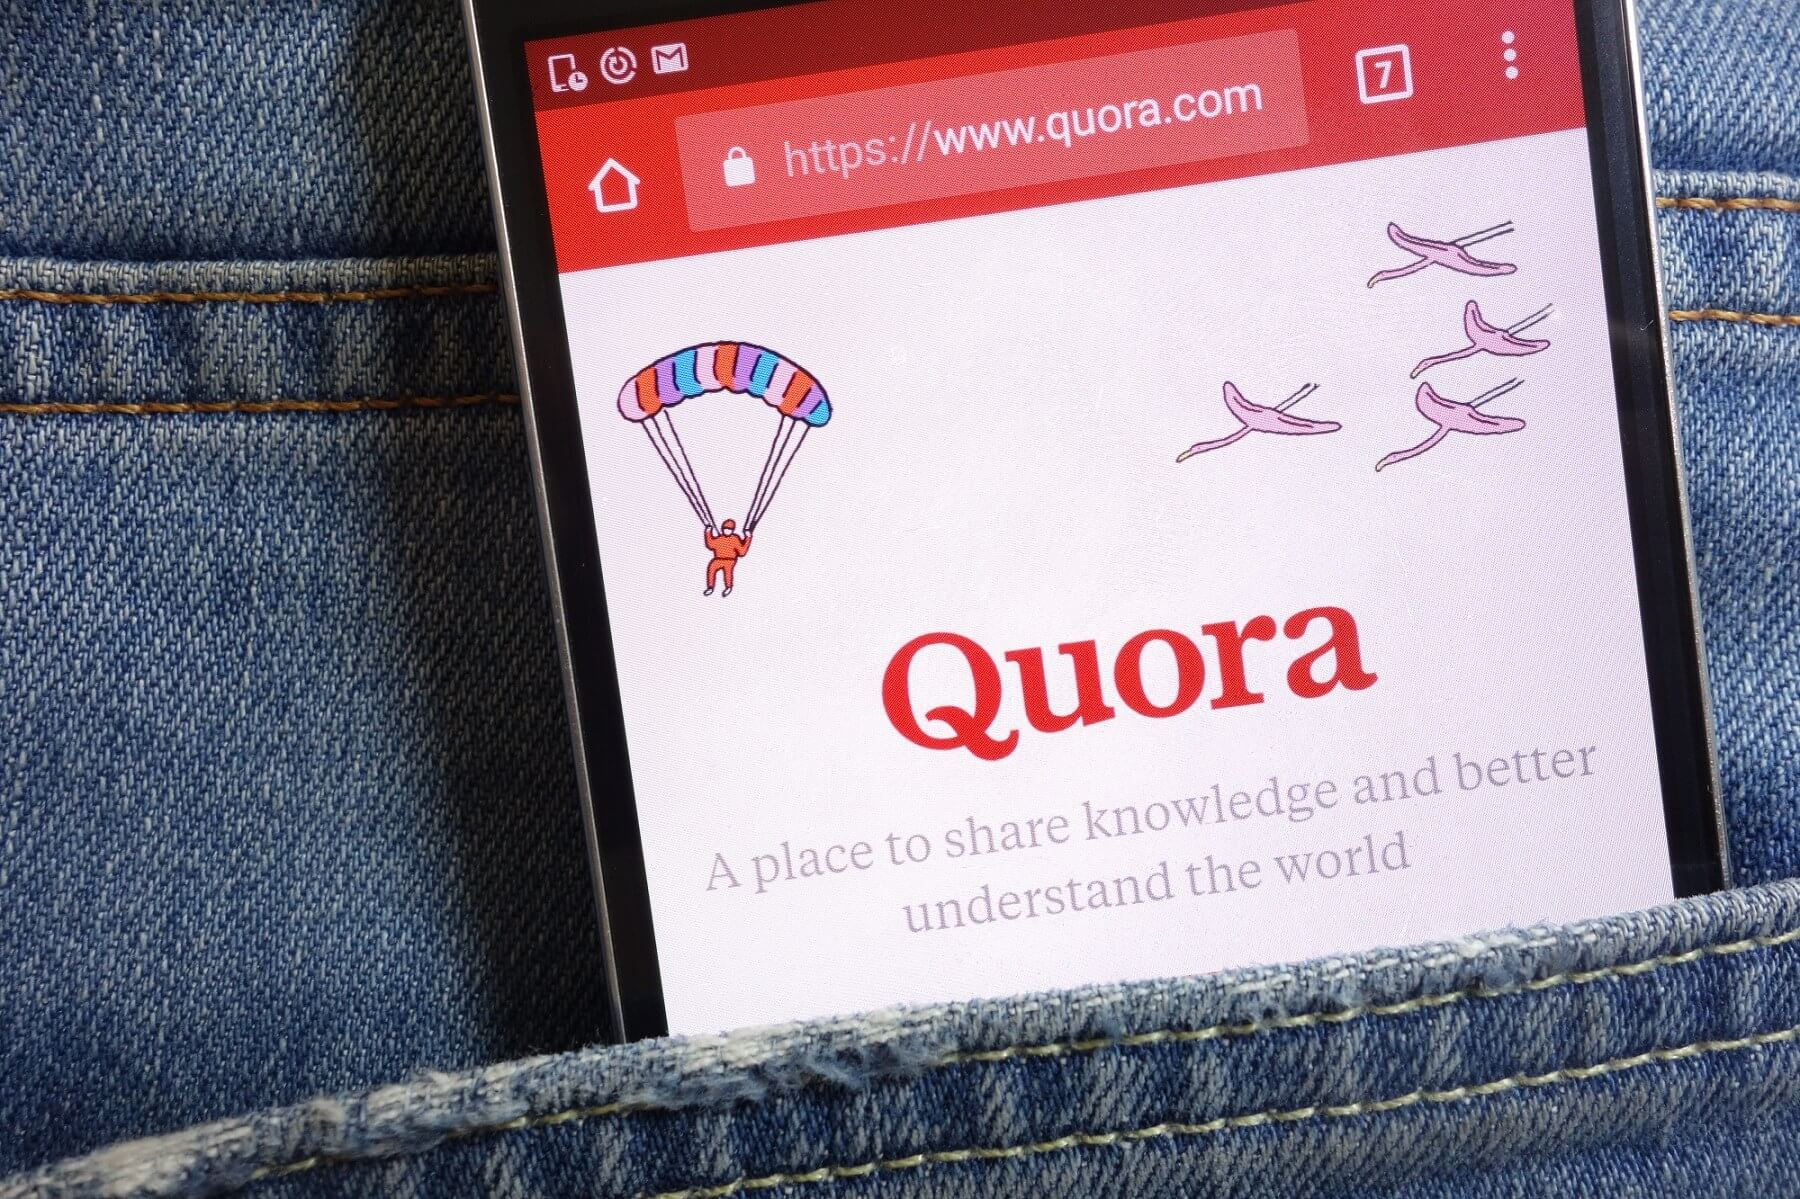 Quora data breach exposes 100 million users' personal info latest news today